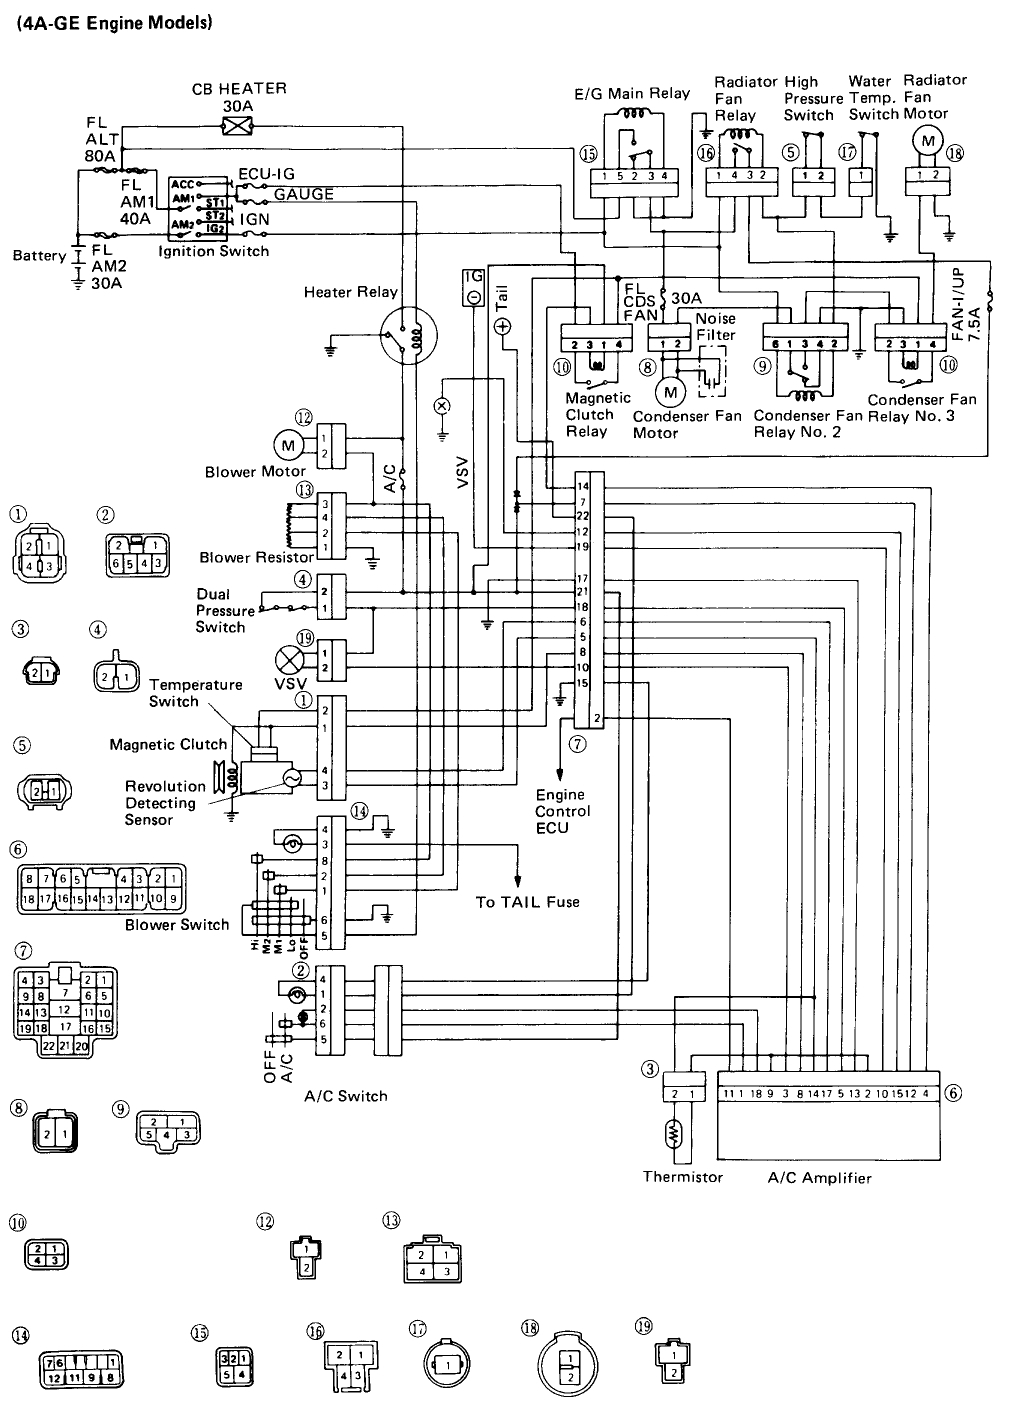 93 Toyota Corolla Fuse Box Diagram. Toyota. Wiring Diagram